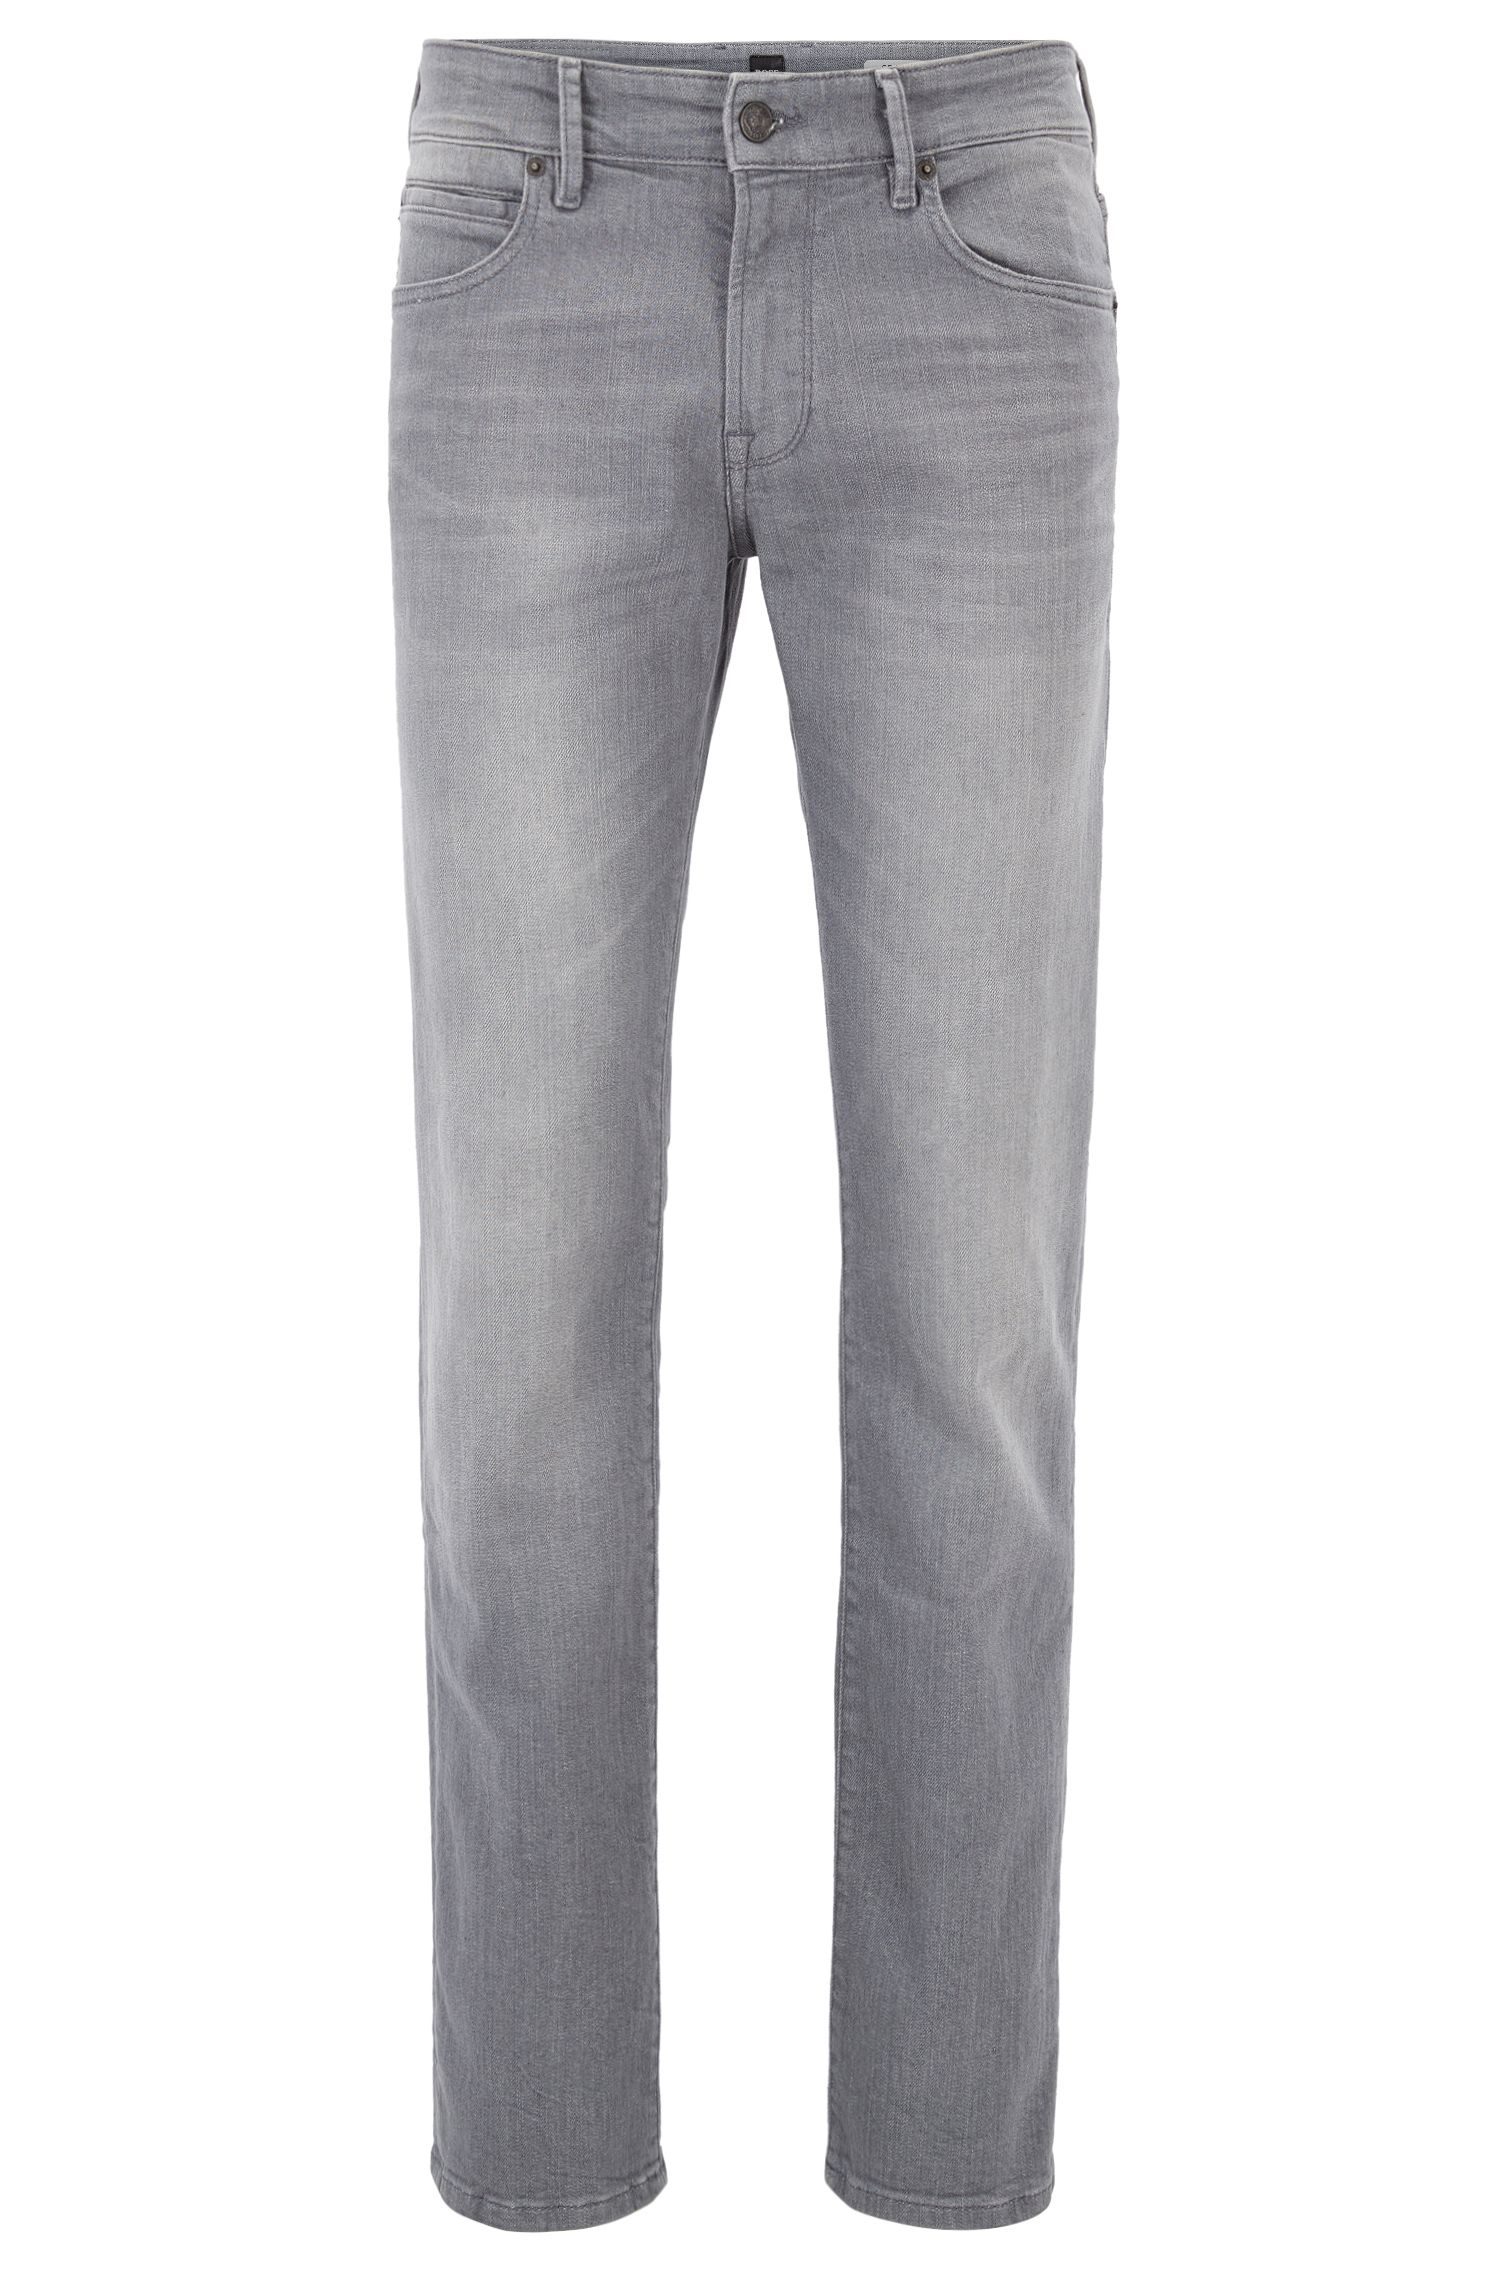 Regular-Fit Jeans aus komfortablem Stretch-Denim im Used-Look